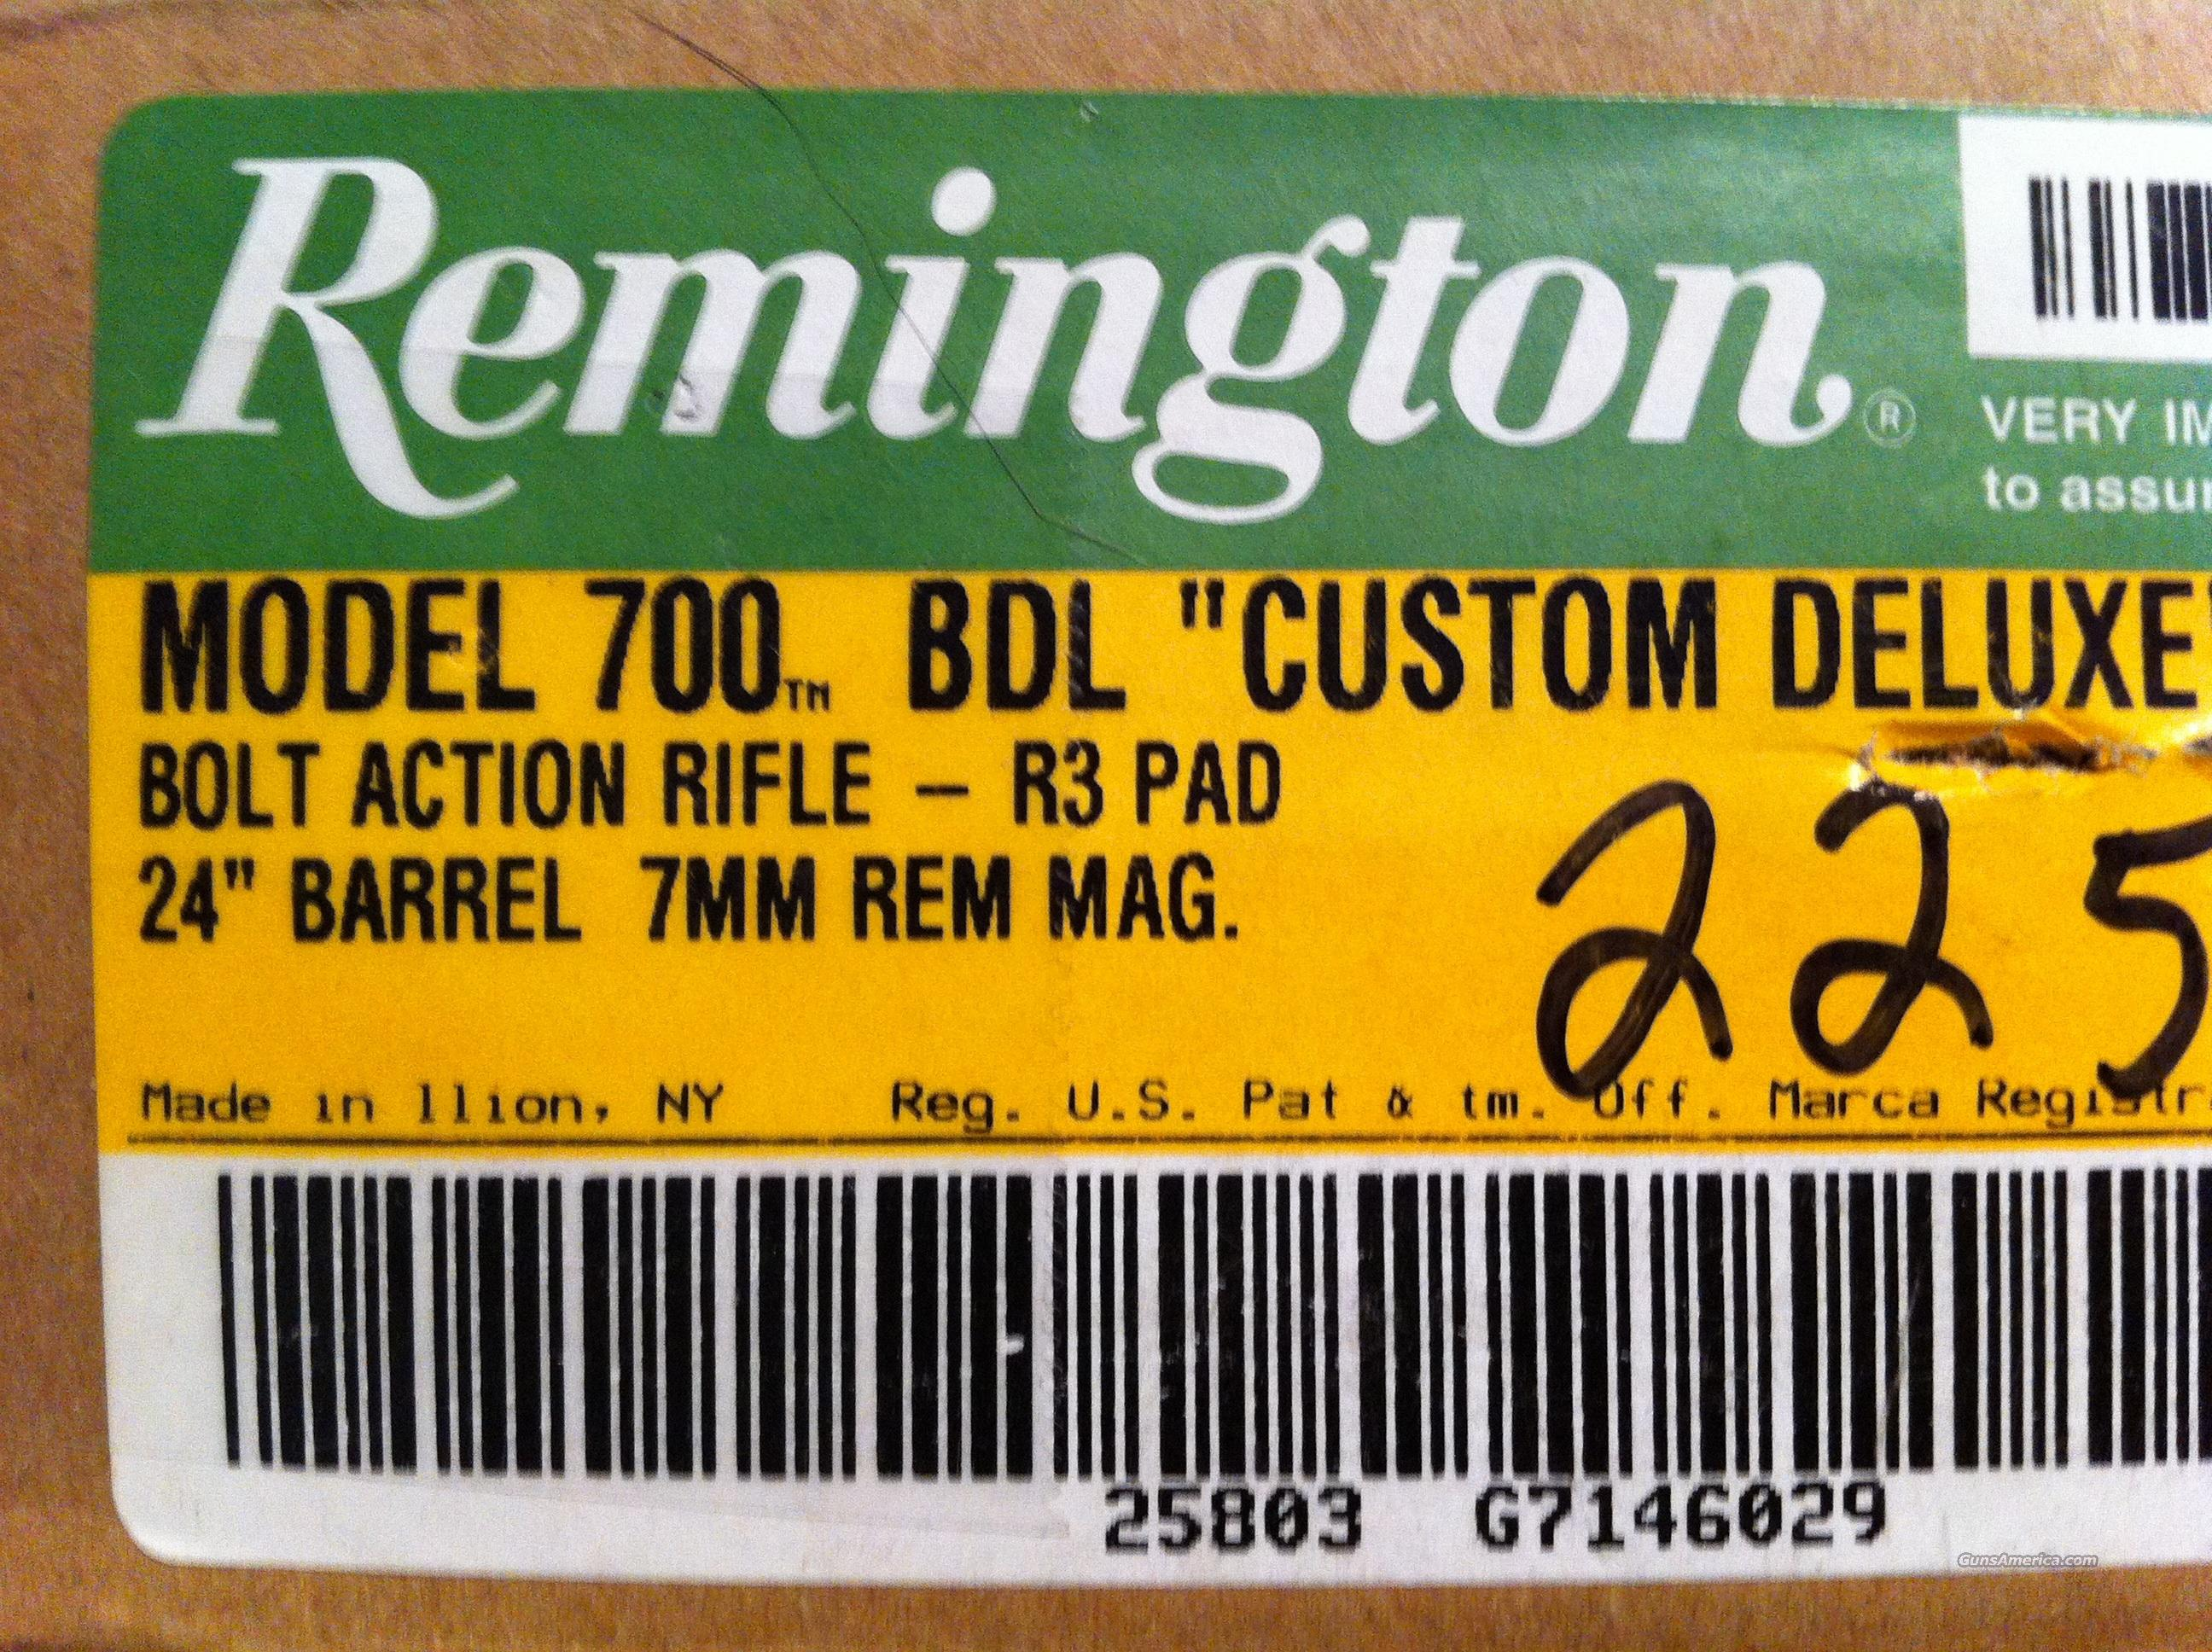 Remington m700 7mm rem mag w/Nikon 4-12x50 ***NIB***  Guns > Rifles > Remington Rifles - Modern > Model 700 > Sporting